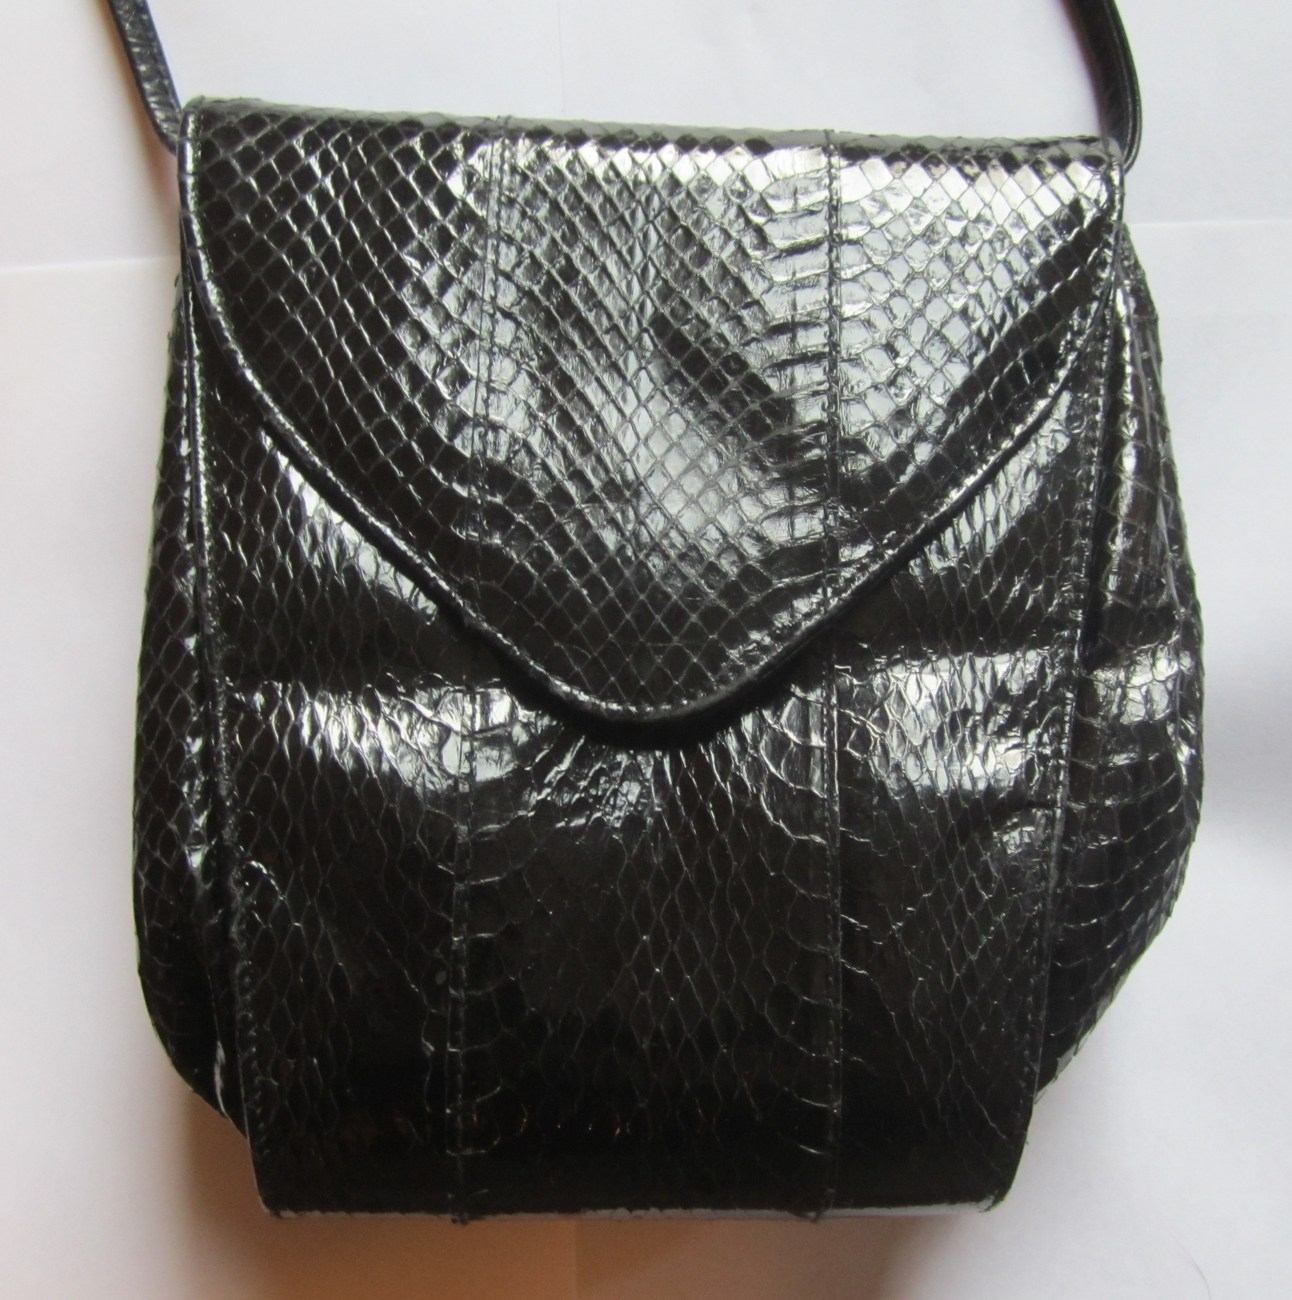 Vintage Black Genuine Snakeskin Purse  by Aspect  Circa 1950s